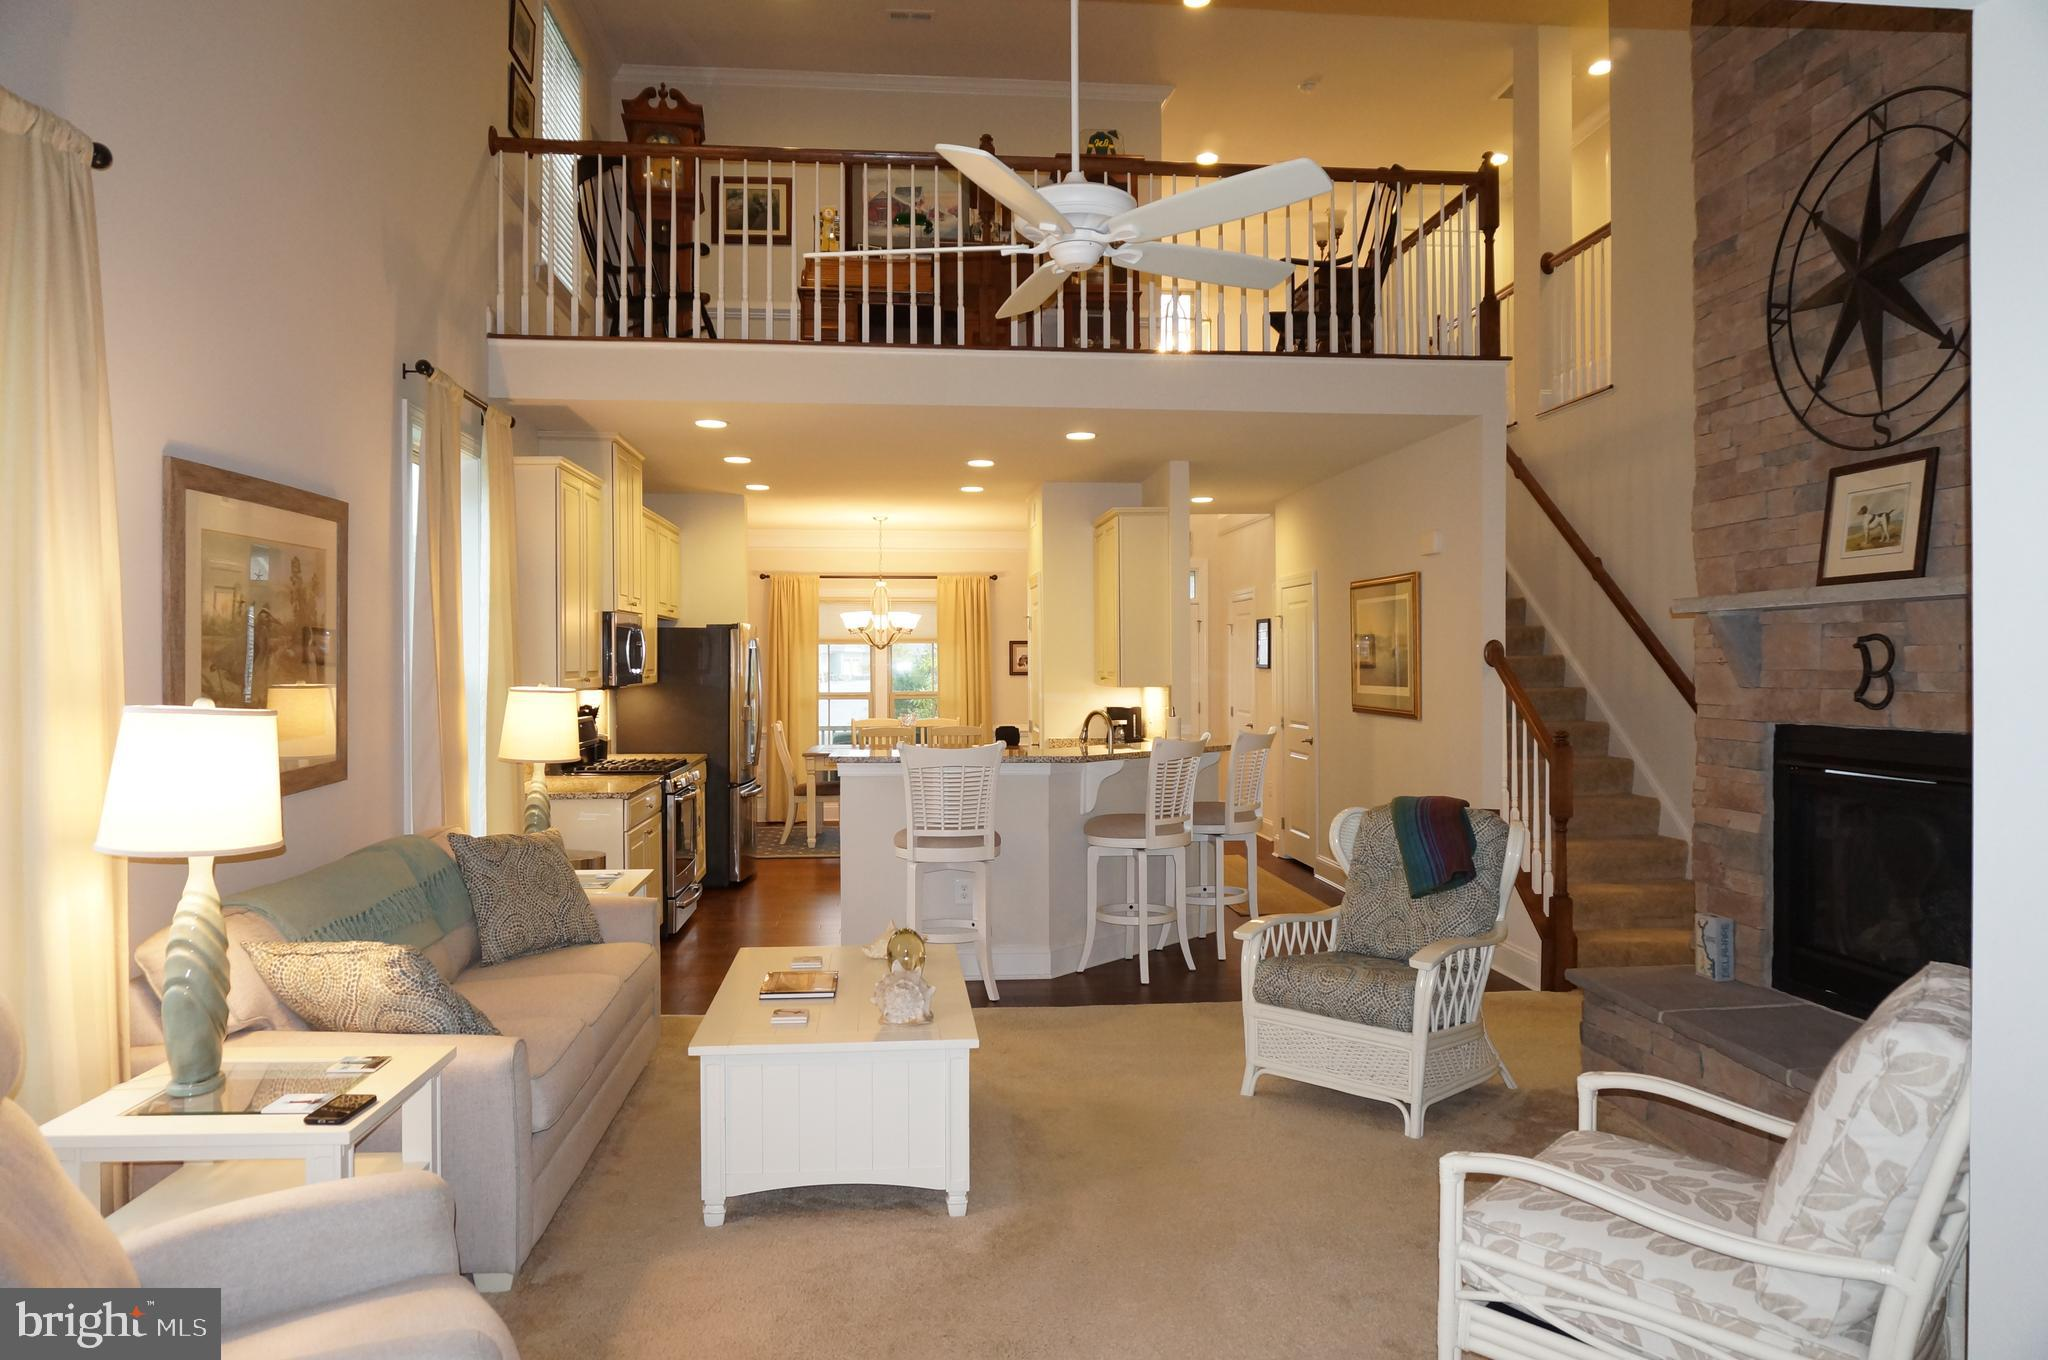 SIMPLY PRISTINE... This is it, BAY FOREST AT BETHANY BEACH-Named Best in American Living. This turn